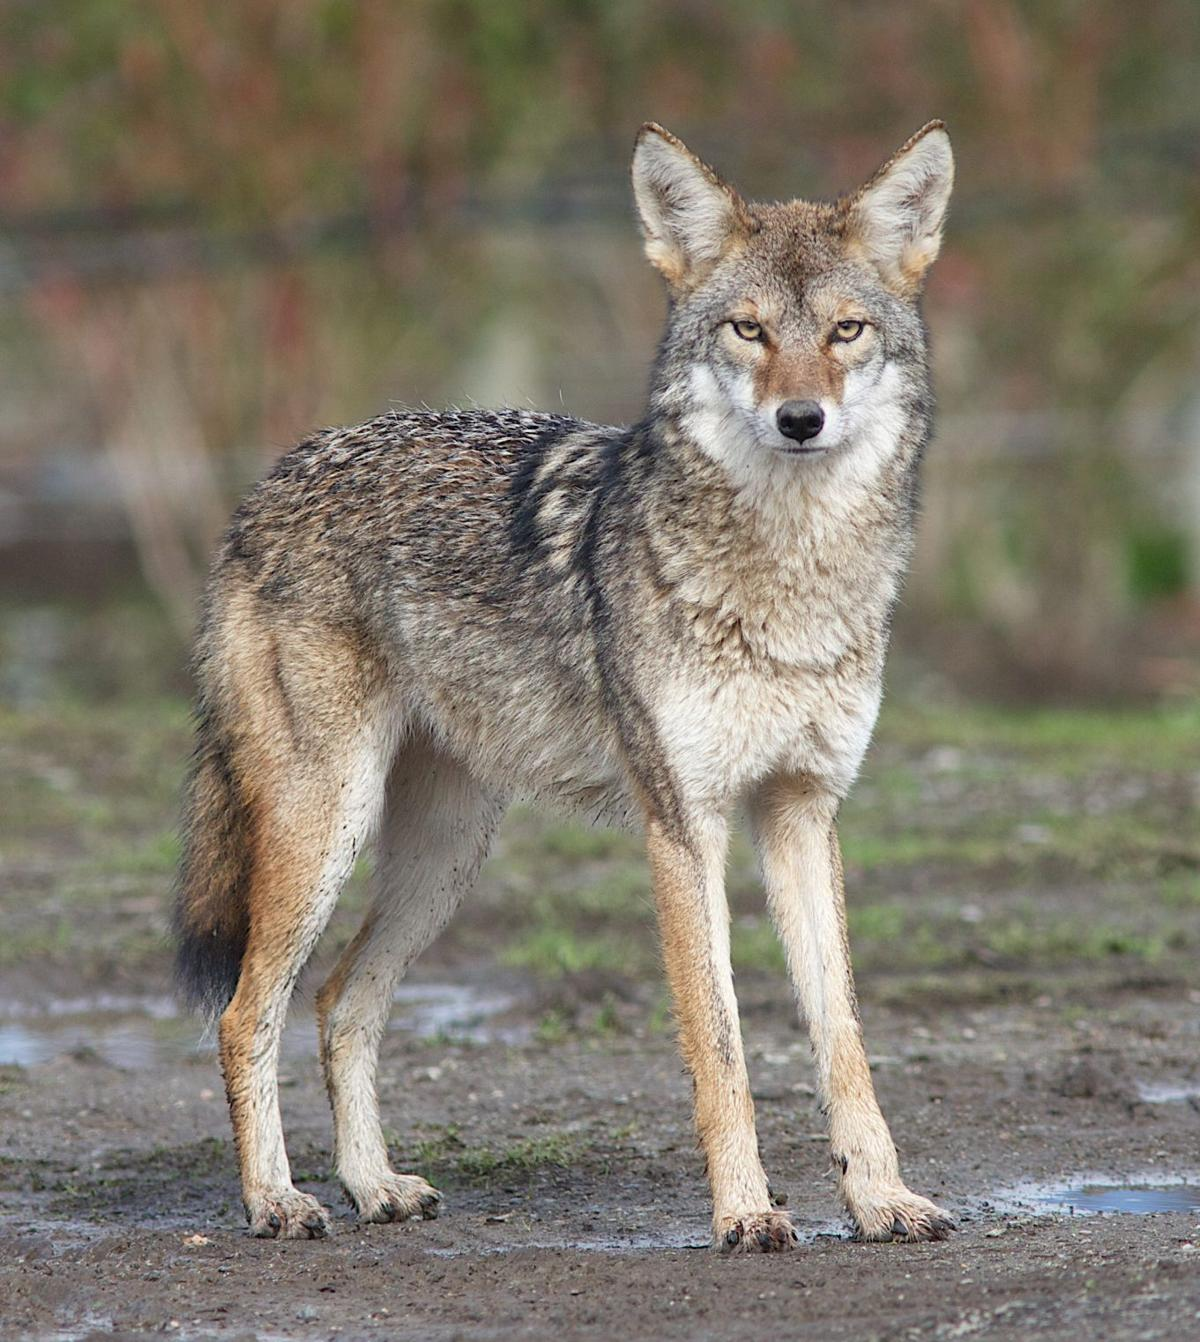 Franklin And Marshall Football >> Enough with elephants, donkeys: Let's consider the wily coyote | Columnists | lancasteronline.com